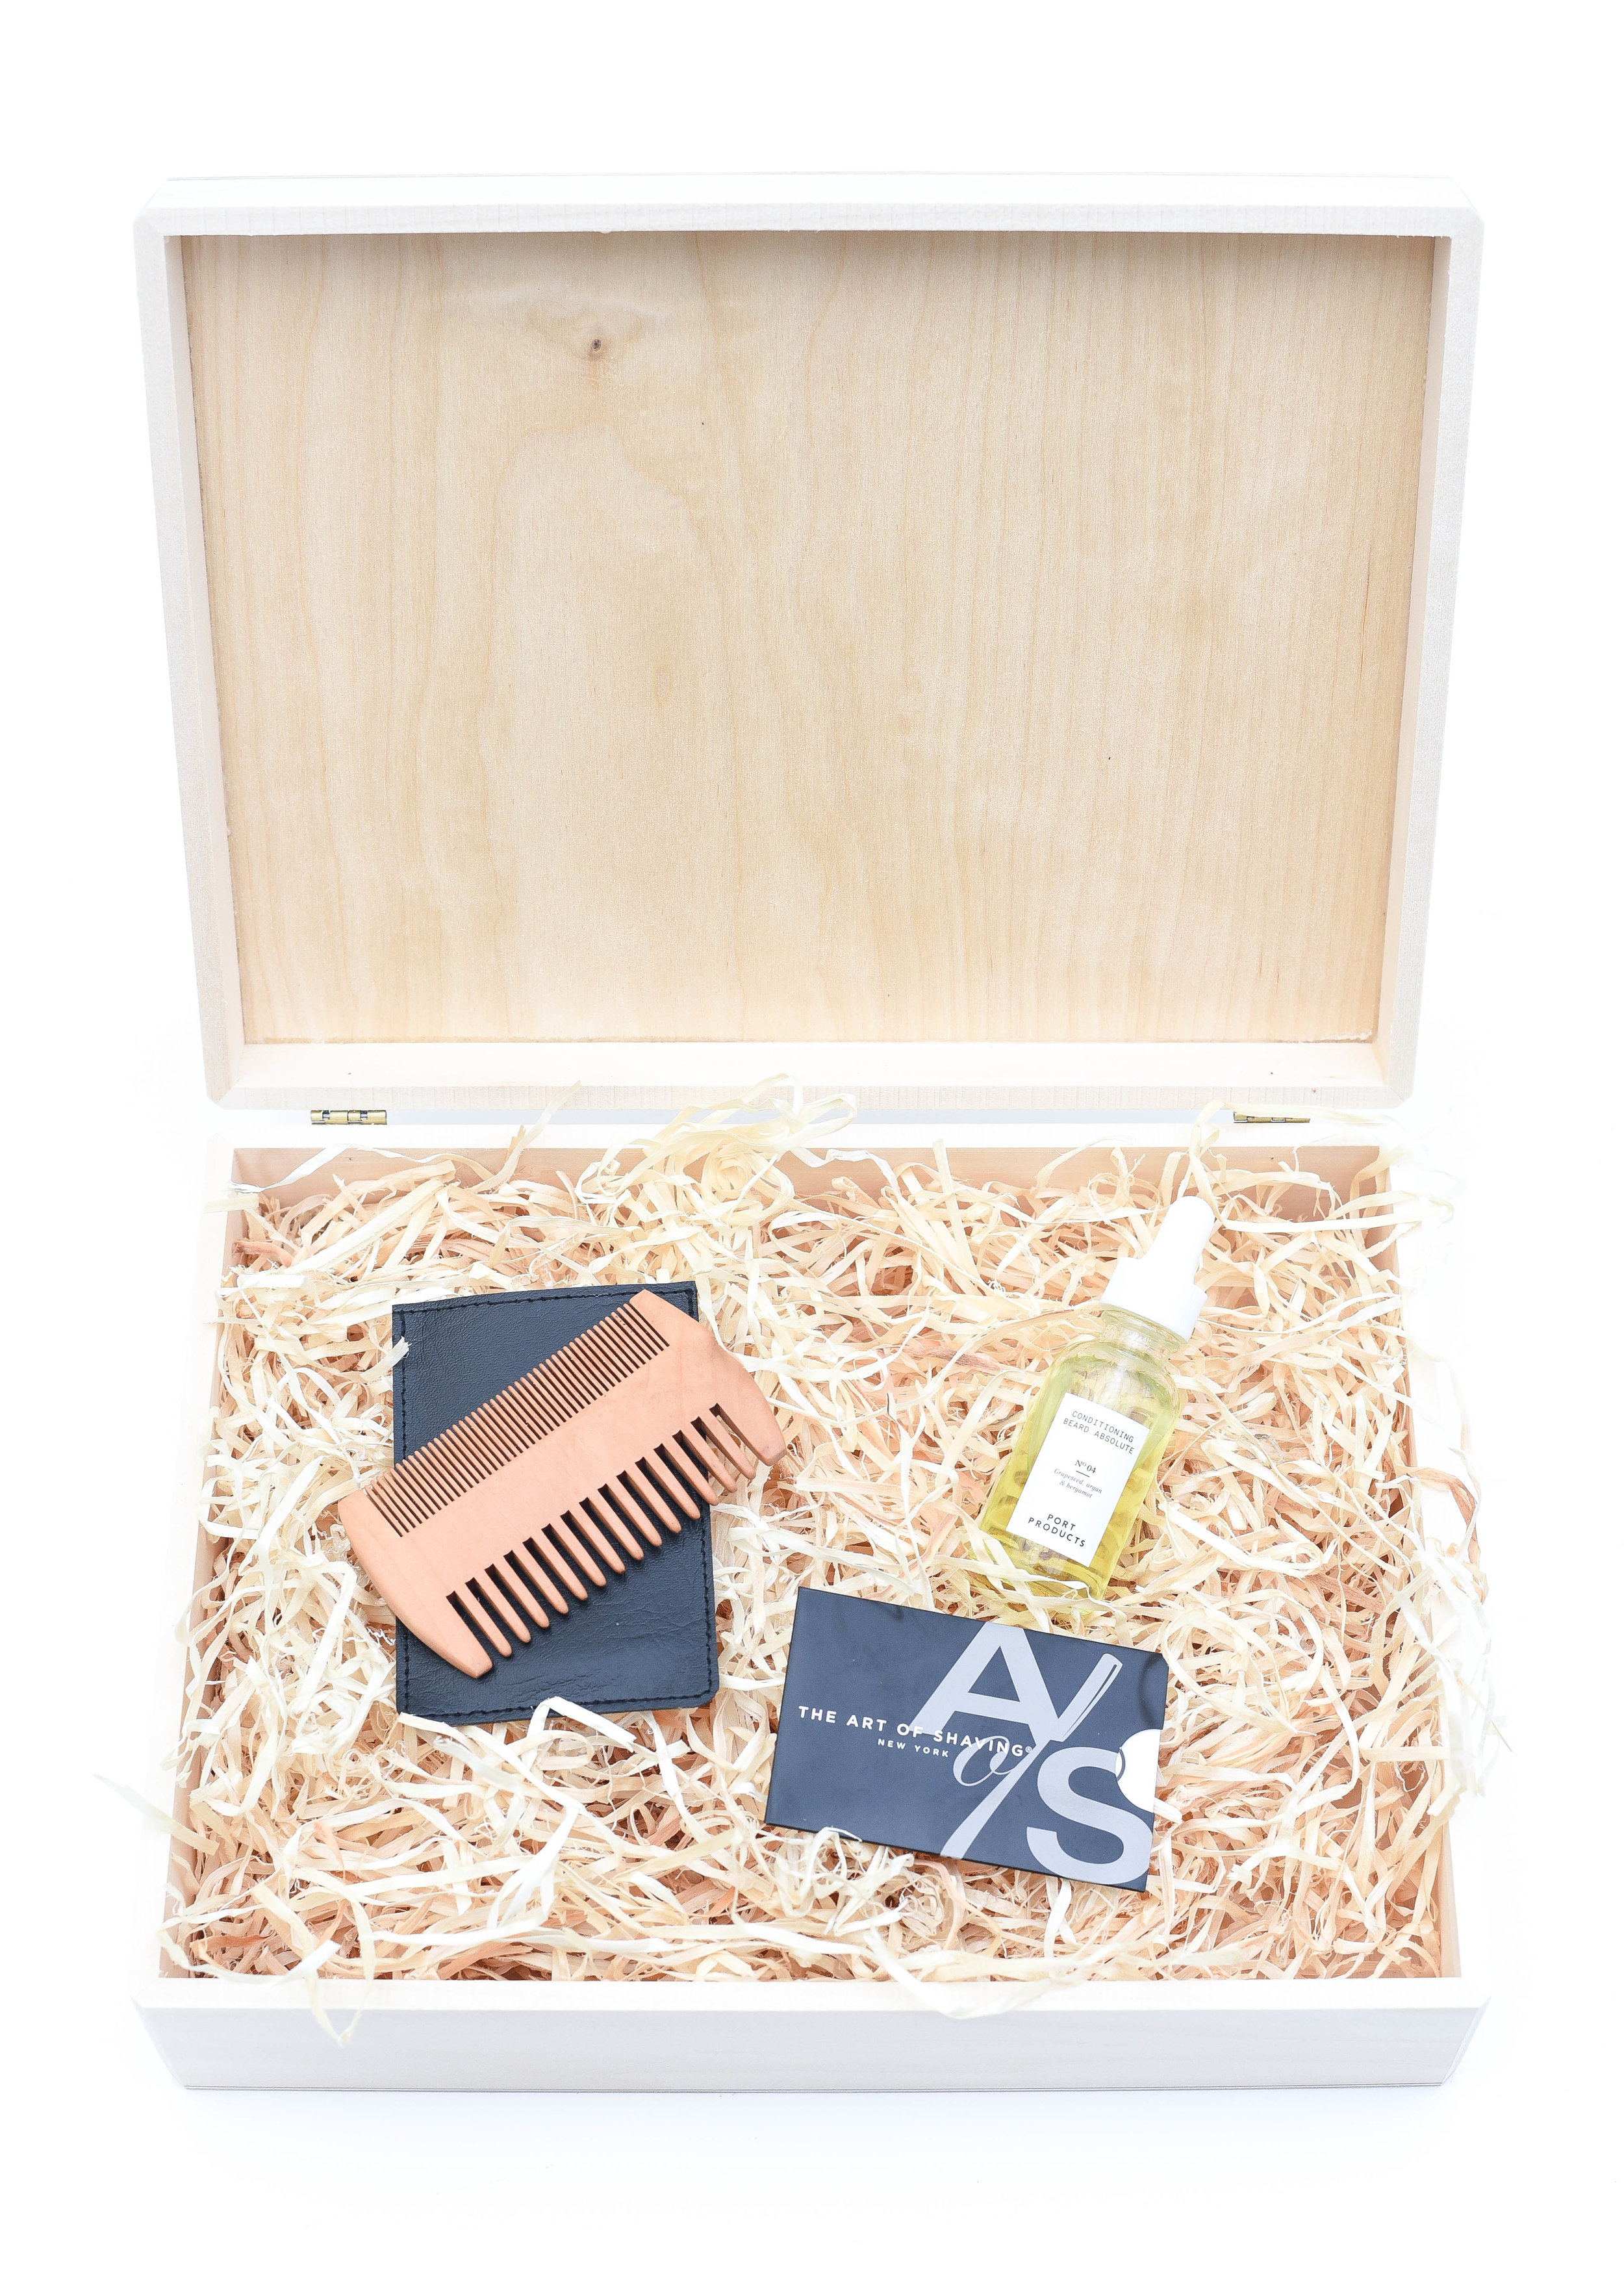 Gift Set for Beards - With a somewhat newly bearded man in my house, I have an inkling you too may have a man or two with facial hair on your Holiday List.  So, to keep things simple, here's a couple of our tried and true picks for Beard Care.  For purchase info, click links below:L:R    Beard Comb   Beard Conditioning Oil   Art of Shaving Gift Card, or better yet pick any of their products for healthy hair growth or  daily skin care  Our go to gift wrap this holiday, shown here:Unfinished Walnut Box (2 pack)   Aspen Wood Excelsior (BULK)Only needing to wrap one present?Individual Unfinished Walnut Box   Aspen Wood Excelsior (4 oz bag)